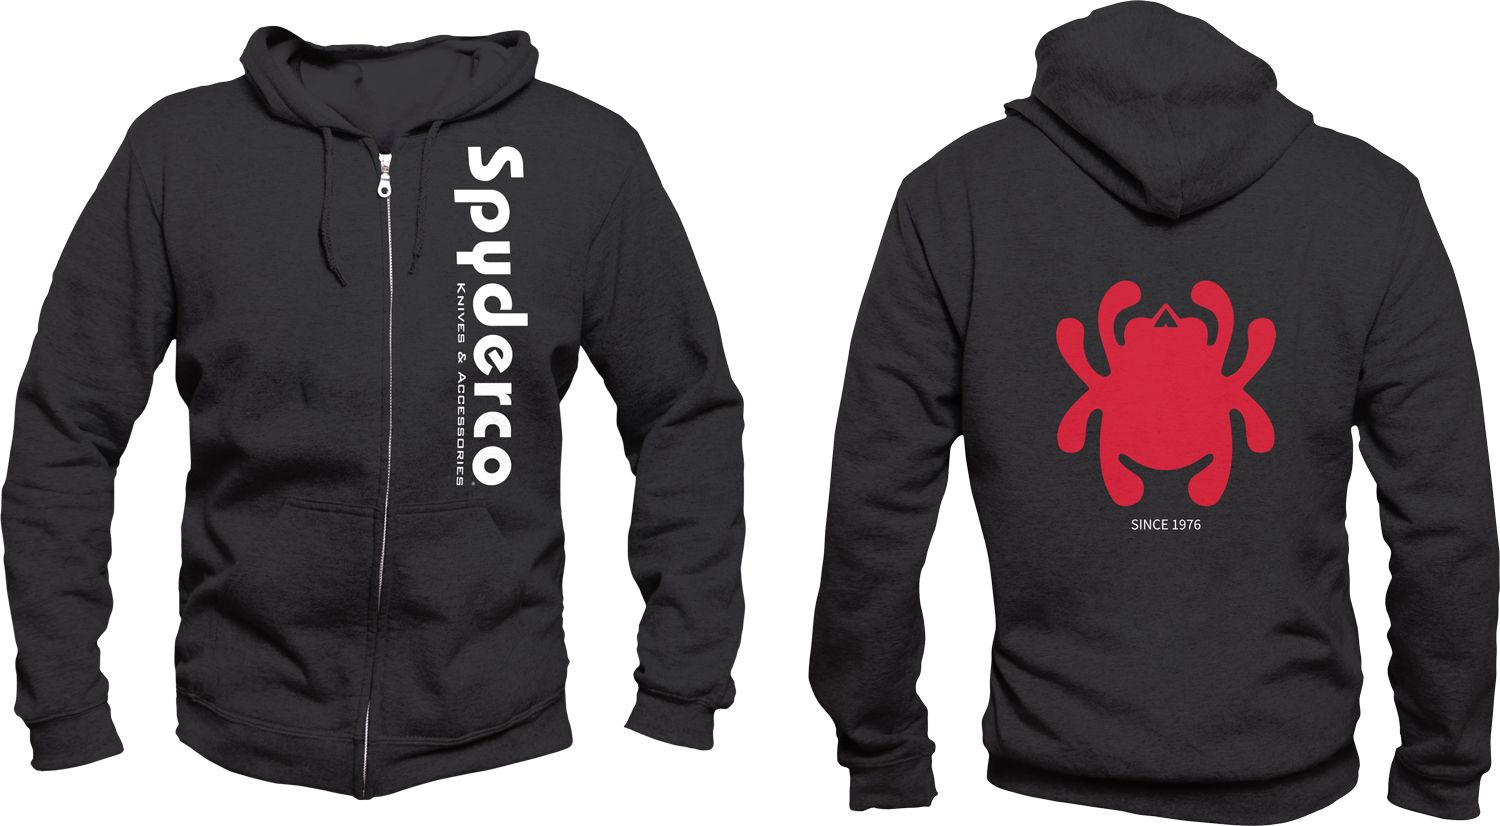 Spyderco Unisex Hooded Sweatshirt, Black, Medium